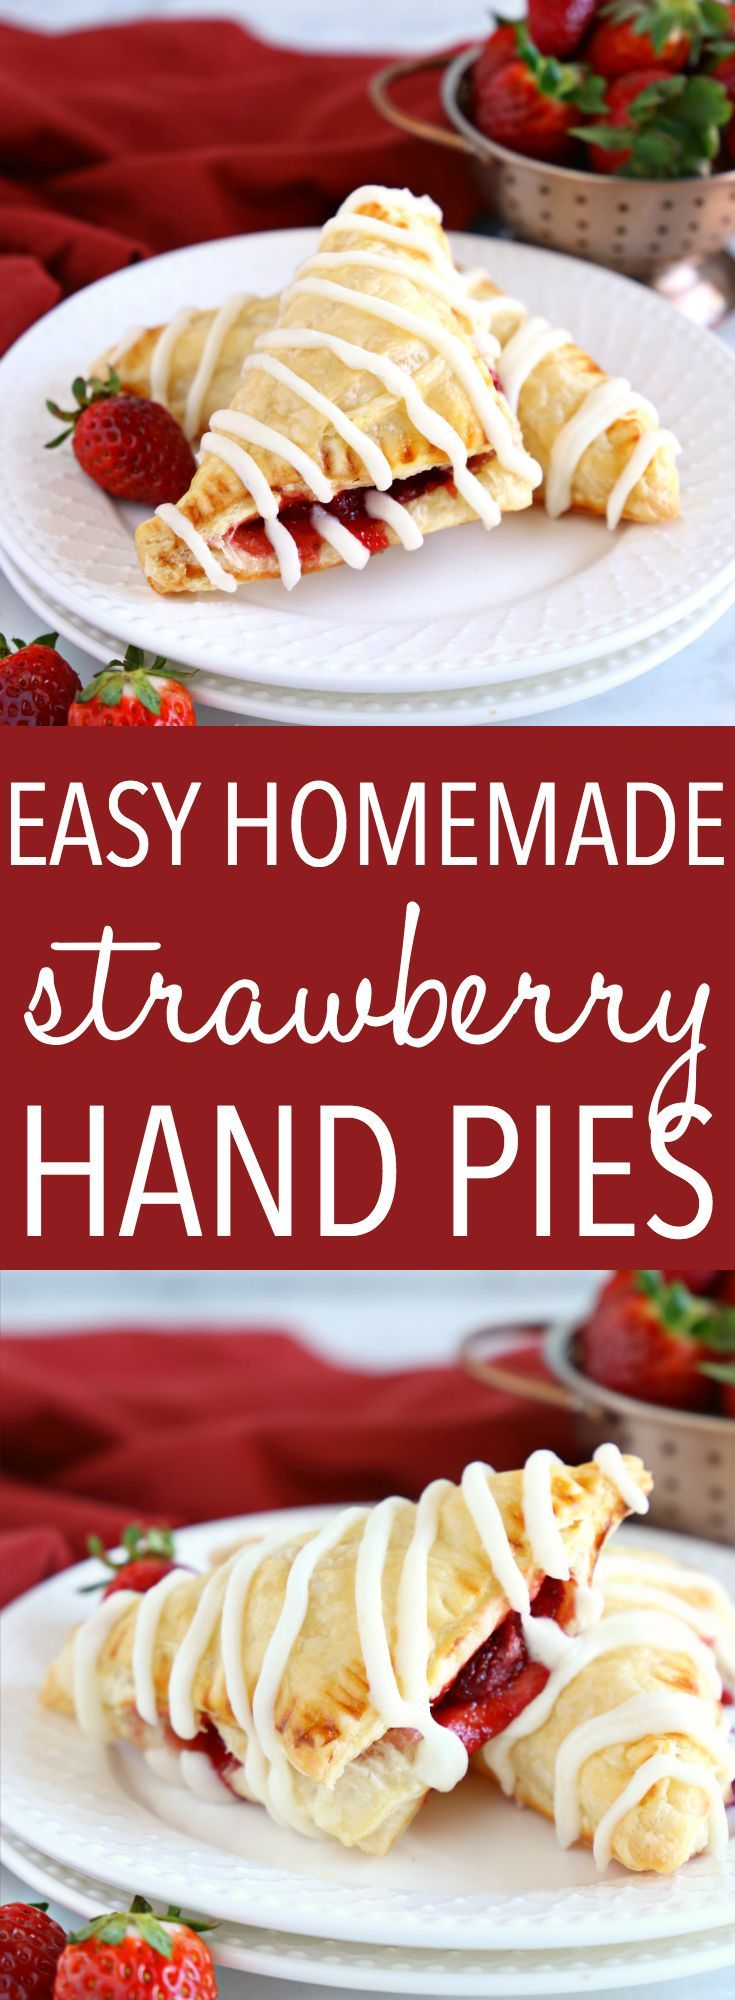 Easy Strawberry Hand Pies {Toaster Strudel Copycat} - The Busy Baker